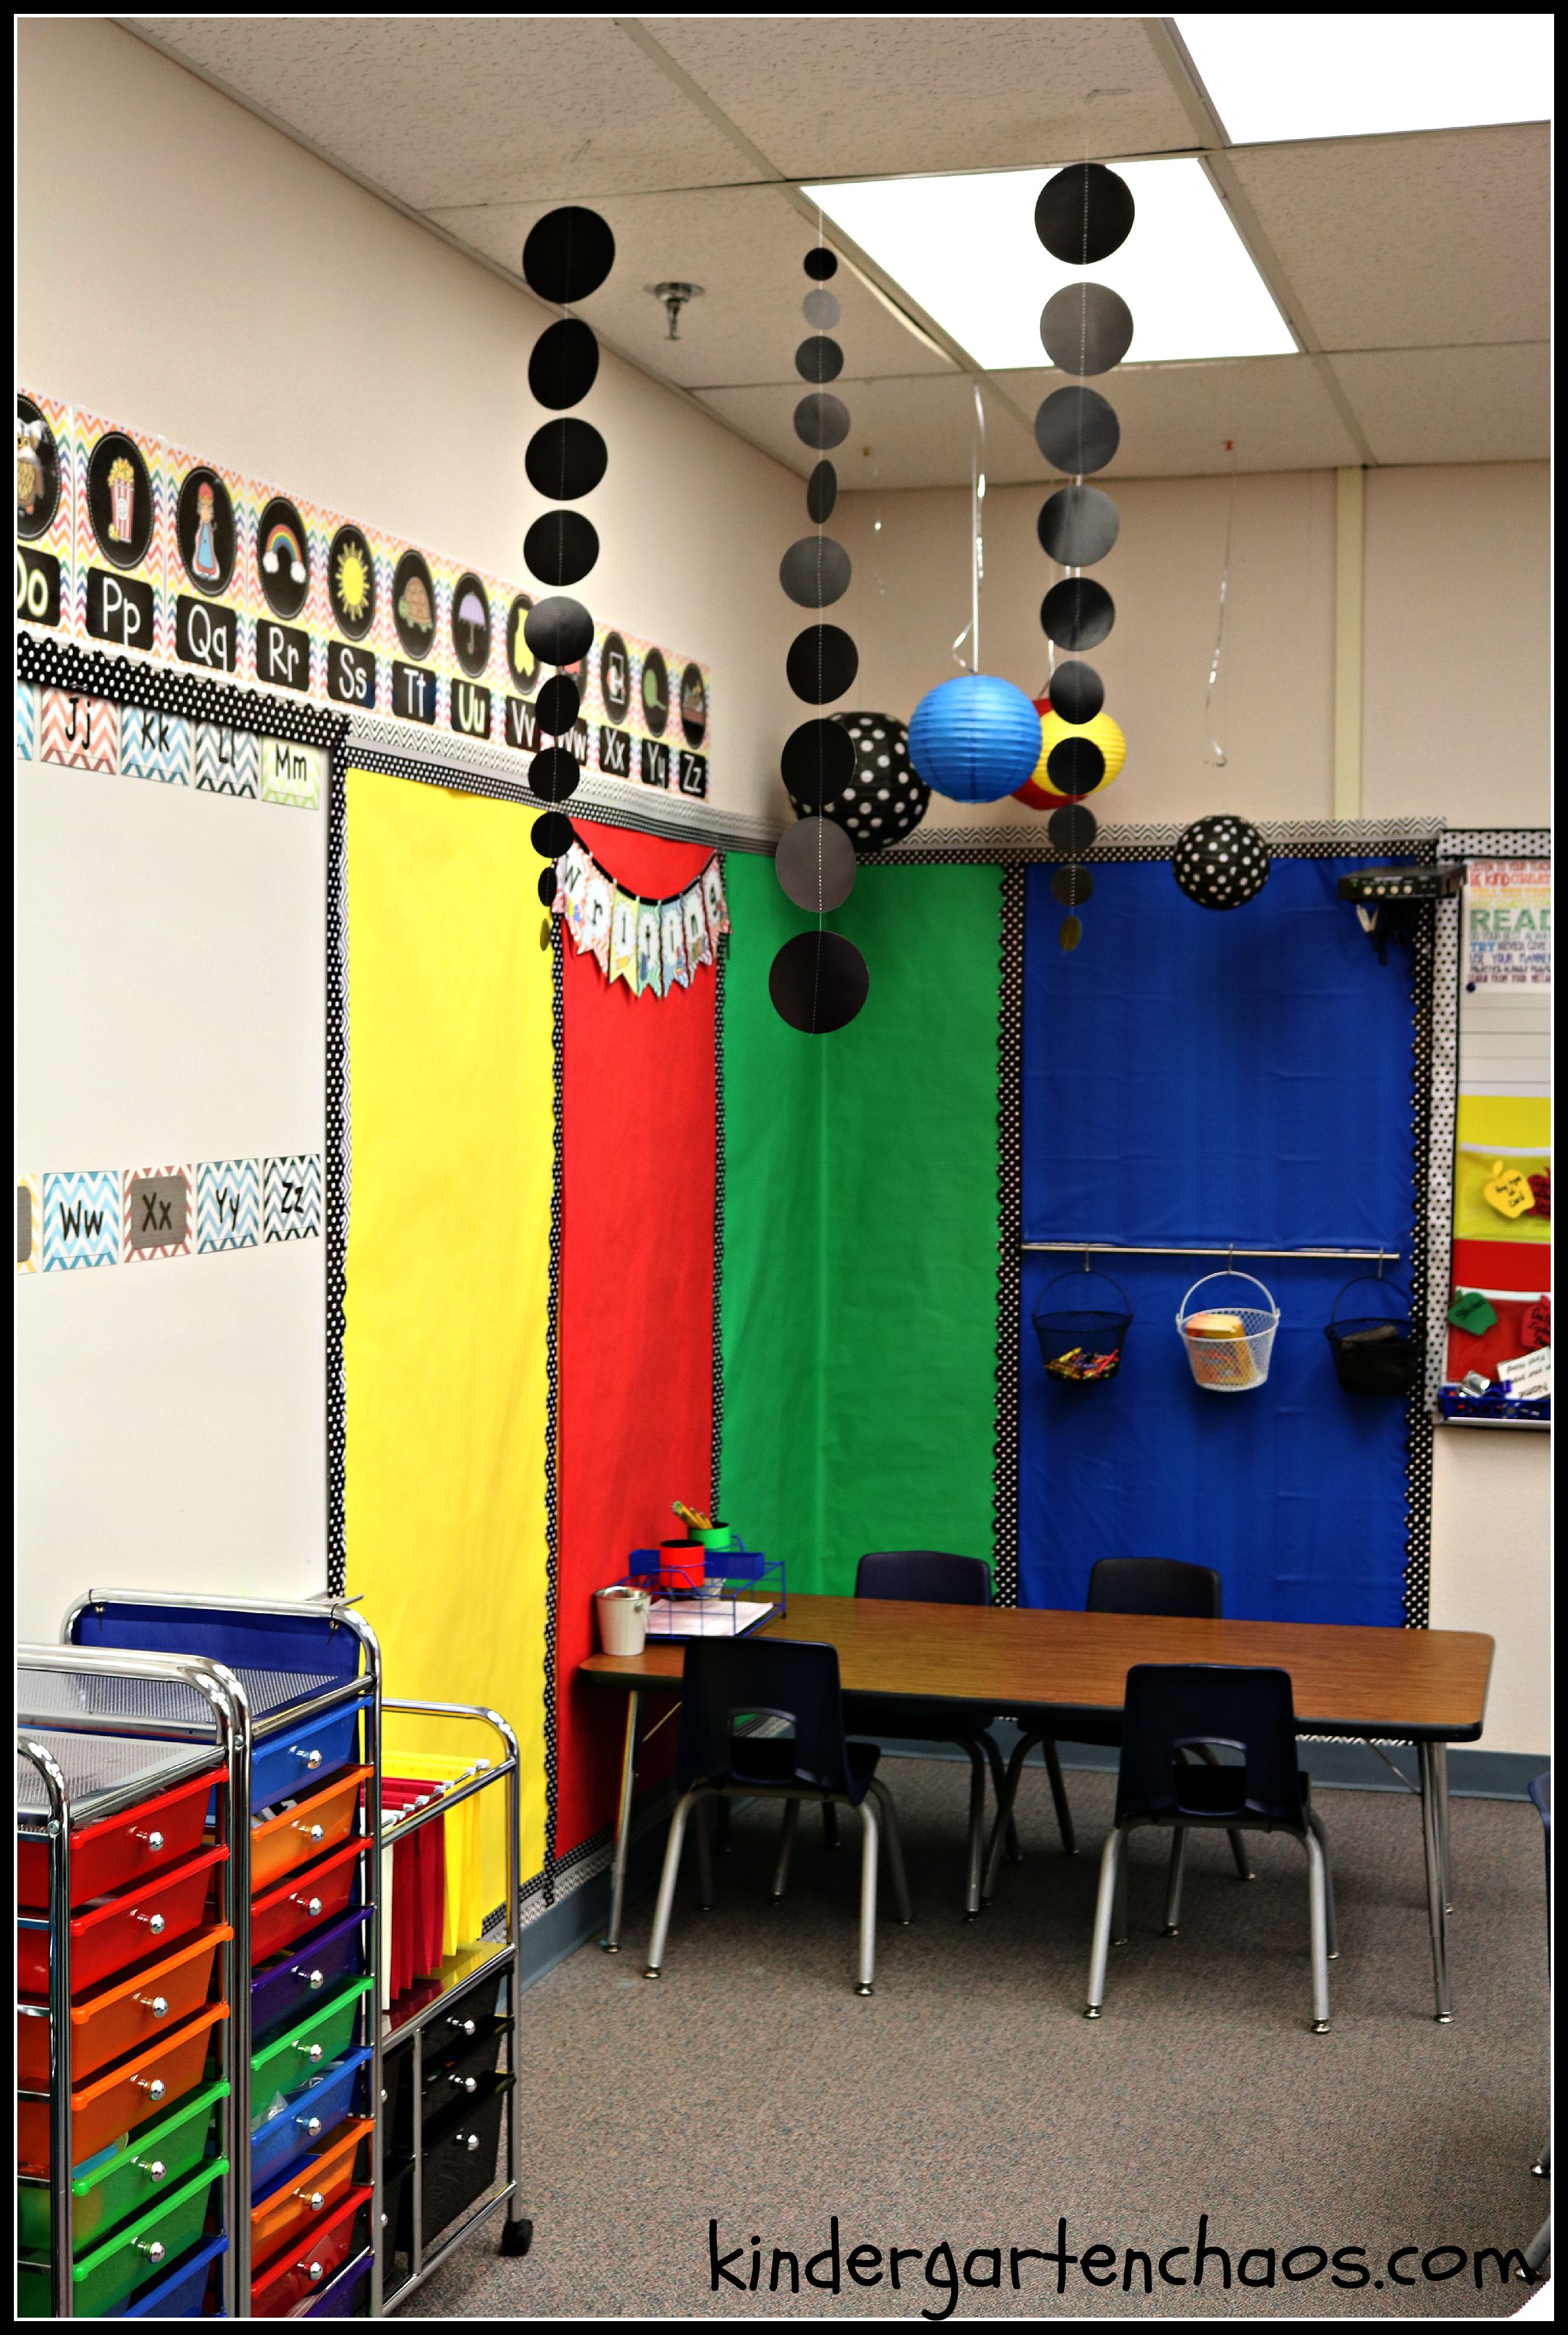 Kindergarten Classroom Decorating Ideas Kindergartenchaos Com Kindergarten Chaos